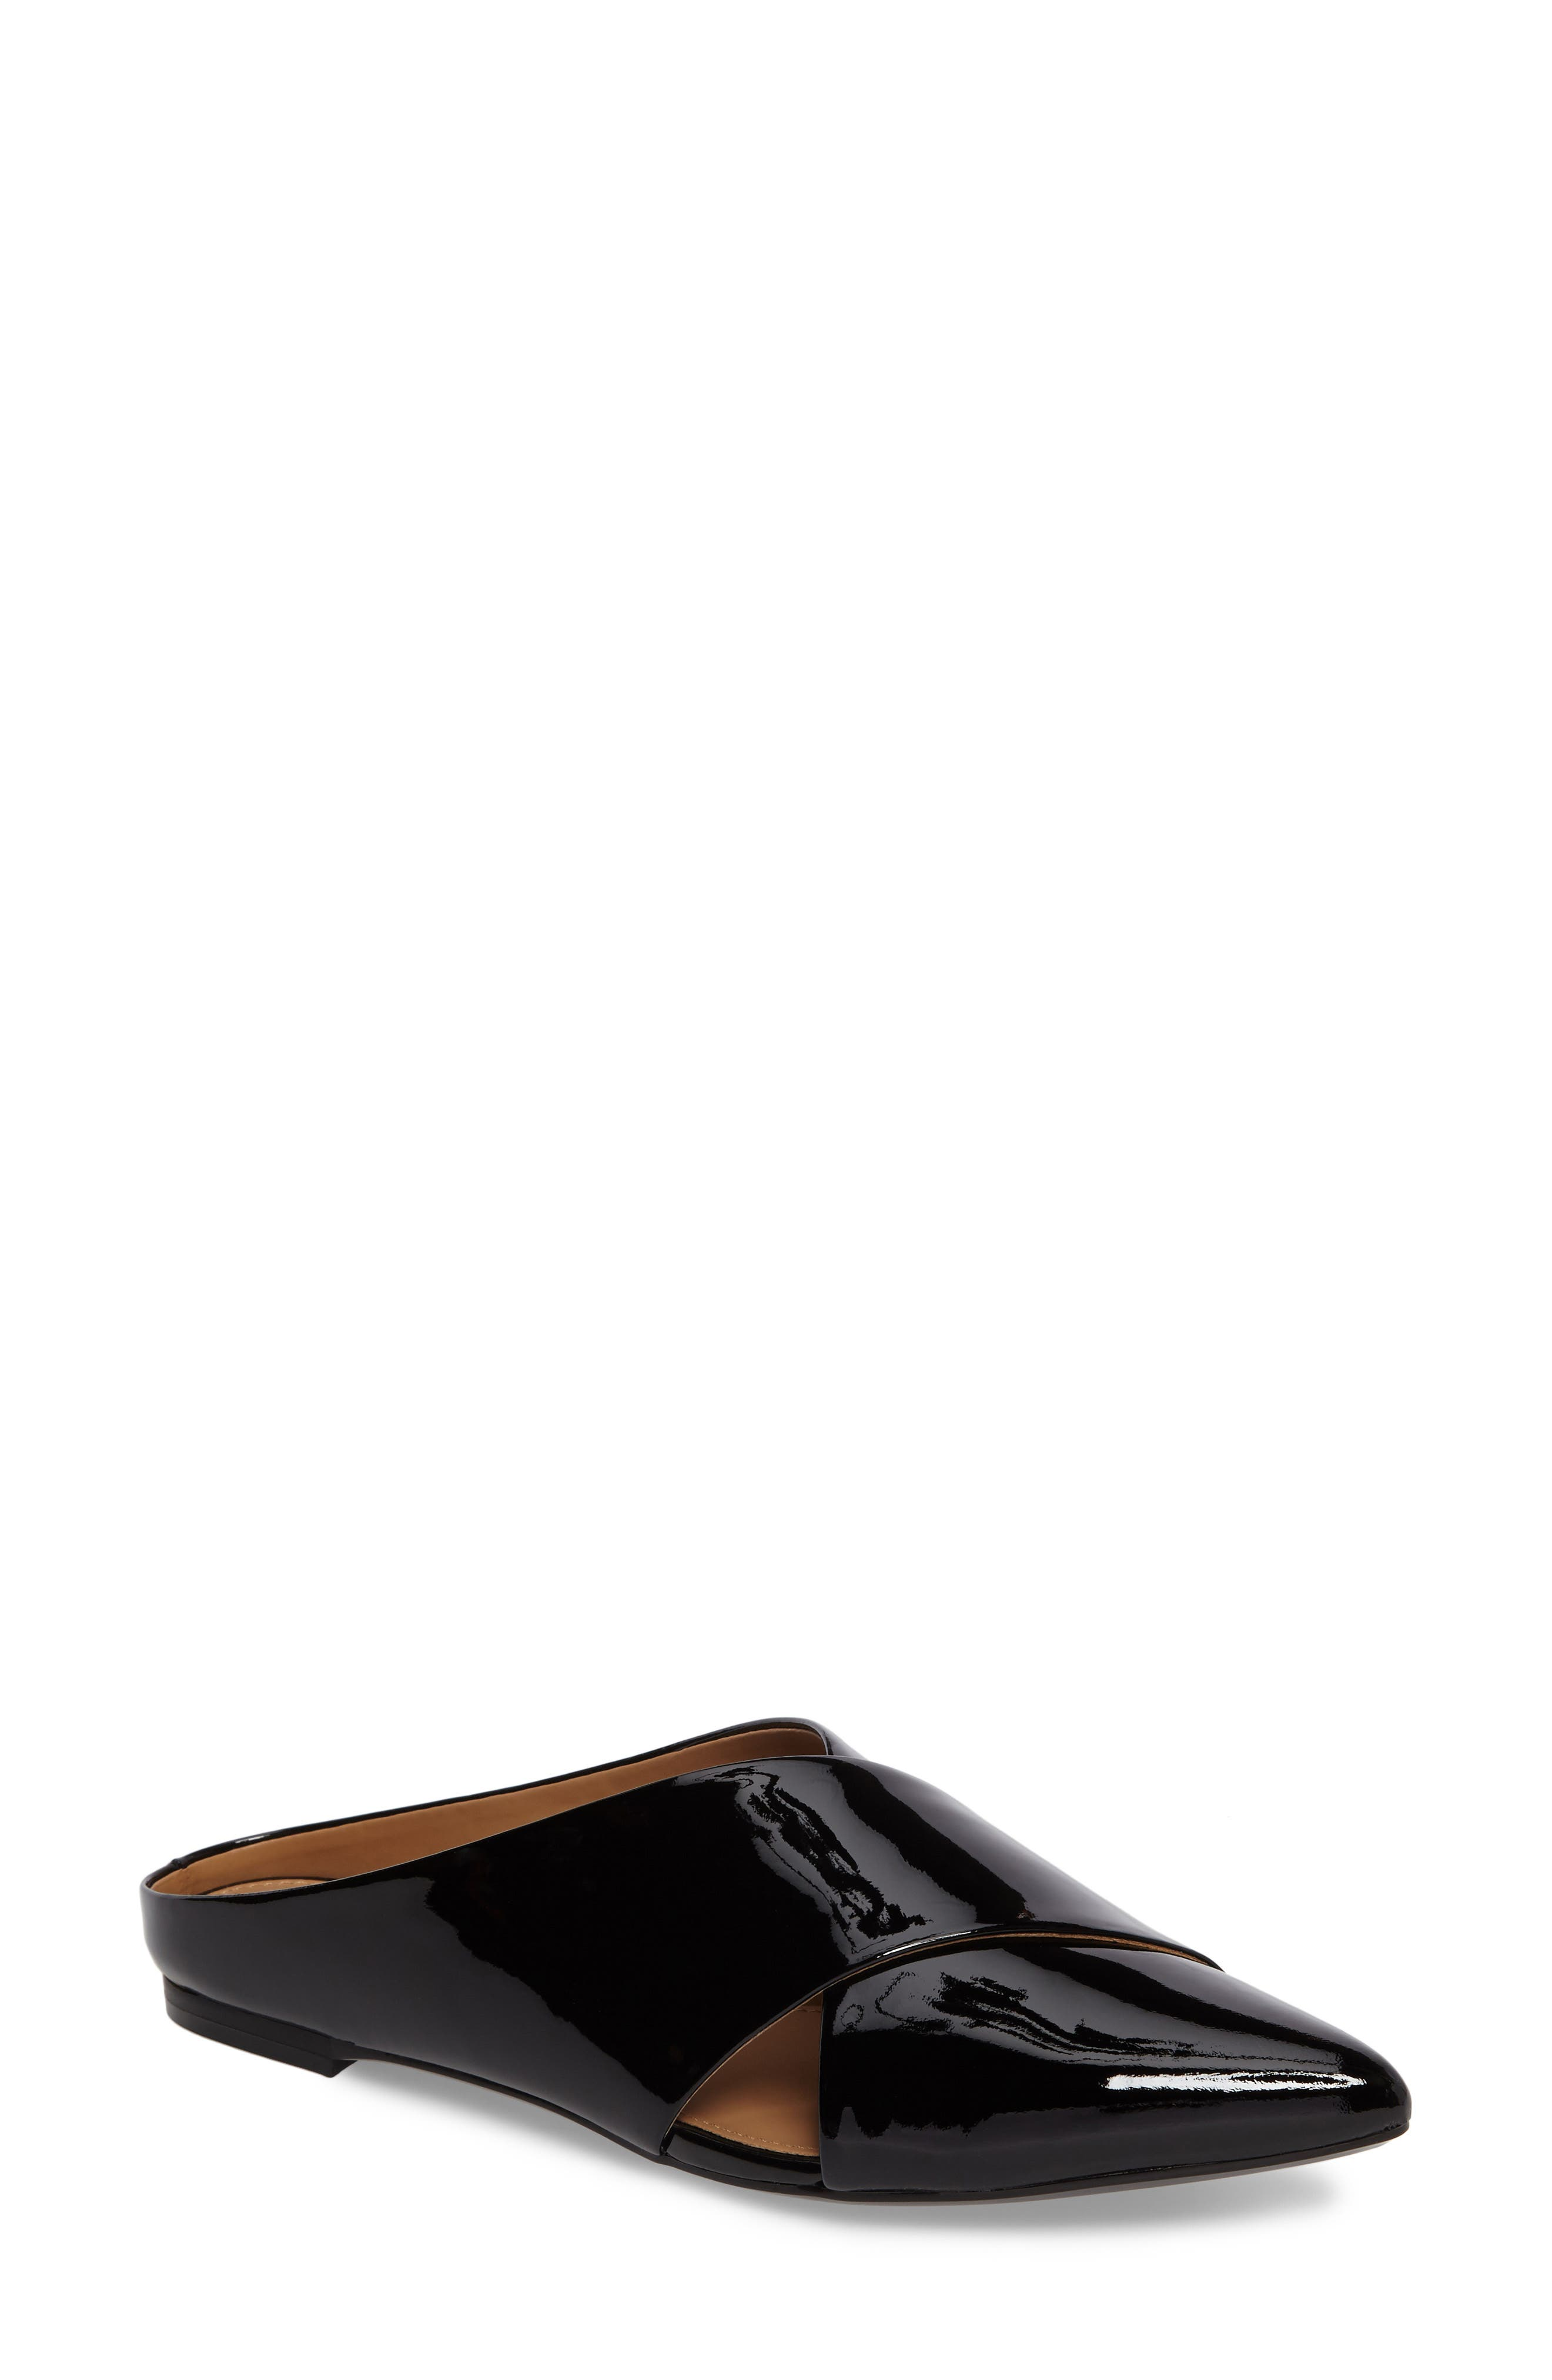 Gerda Cross Strap Mule,                             Main thumbnail 1, color,                             Black Patent